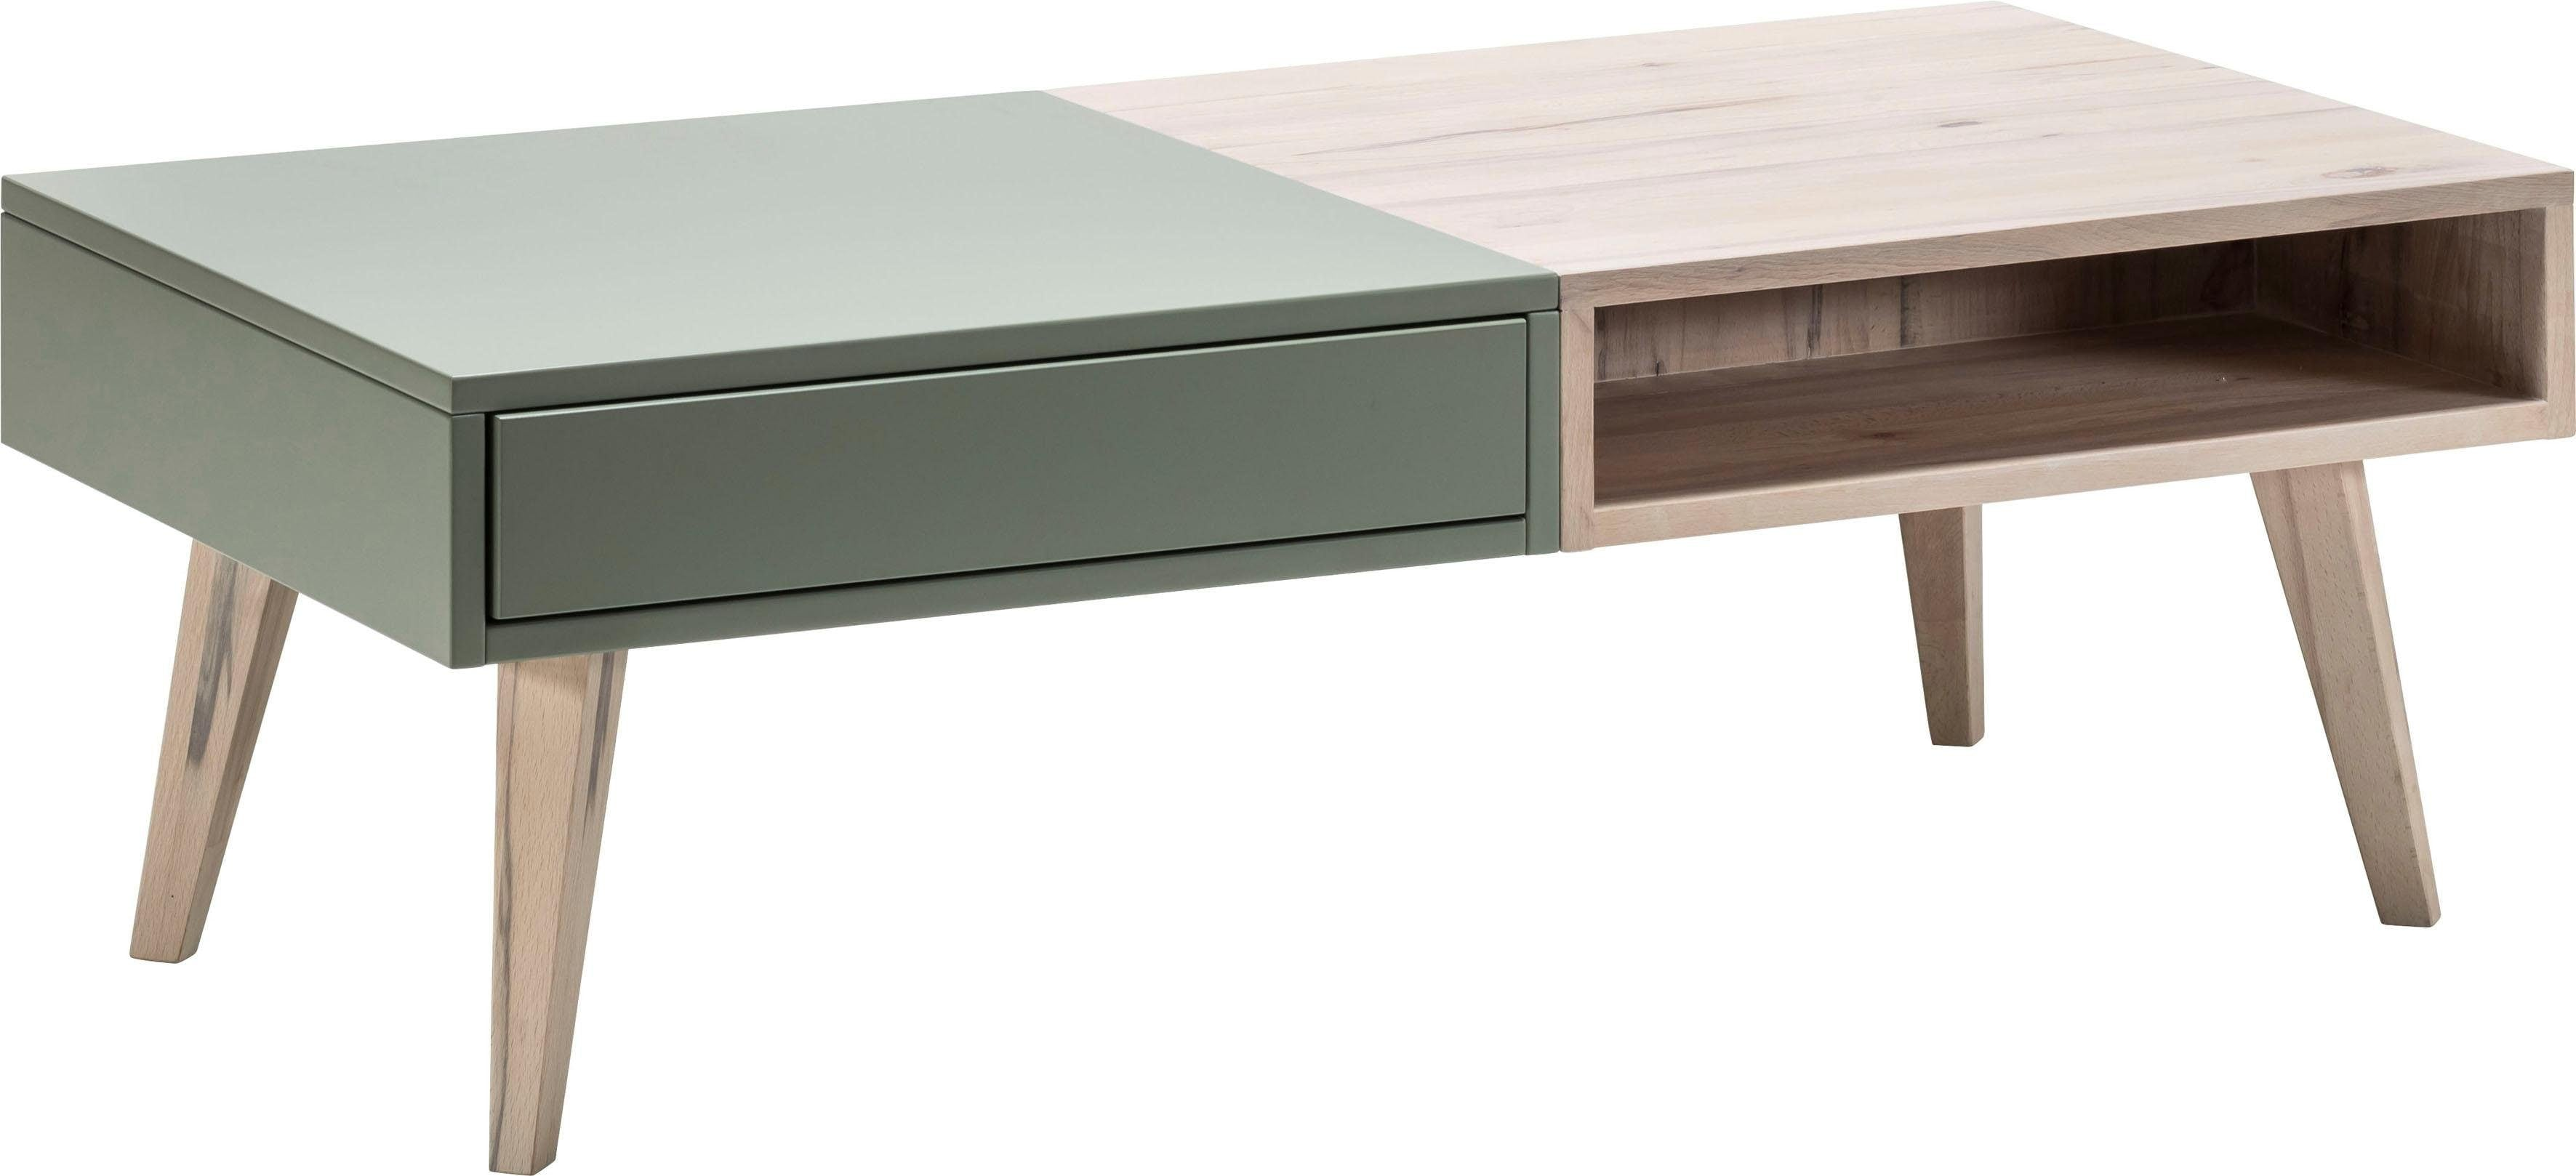 WHITEOAK GROUP Couchtisch Lanzo